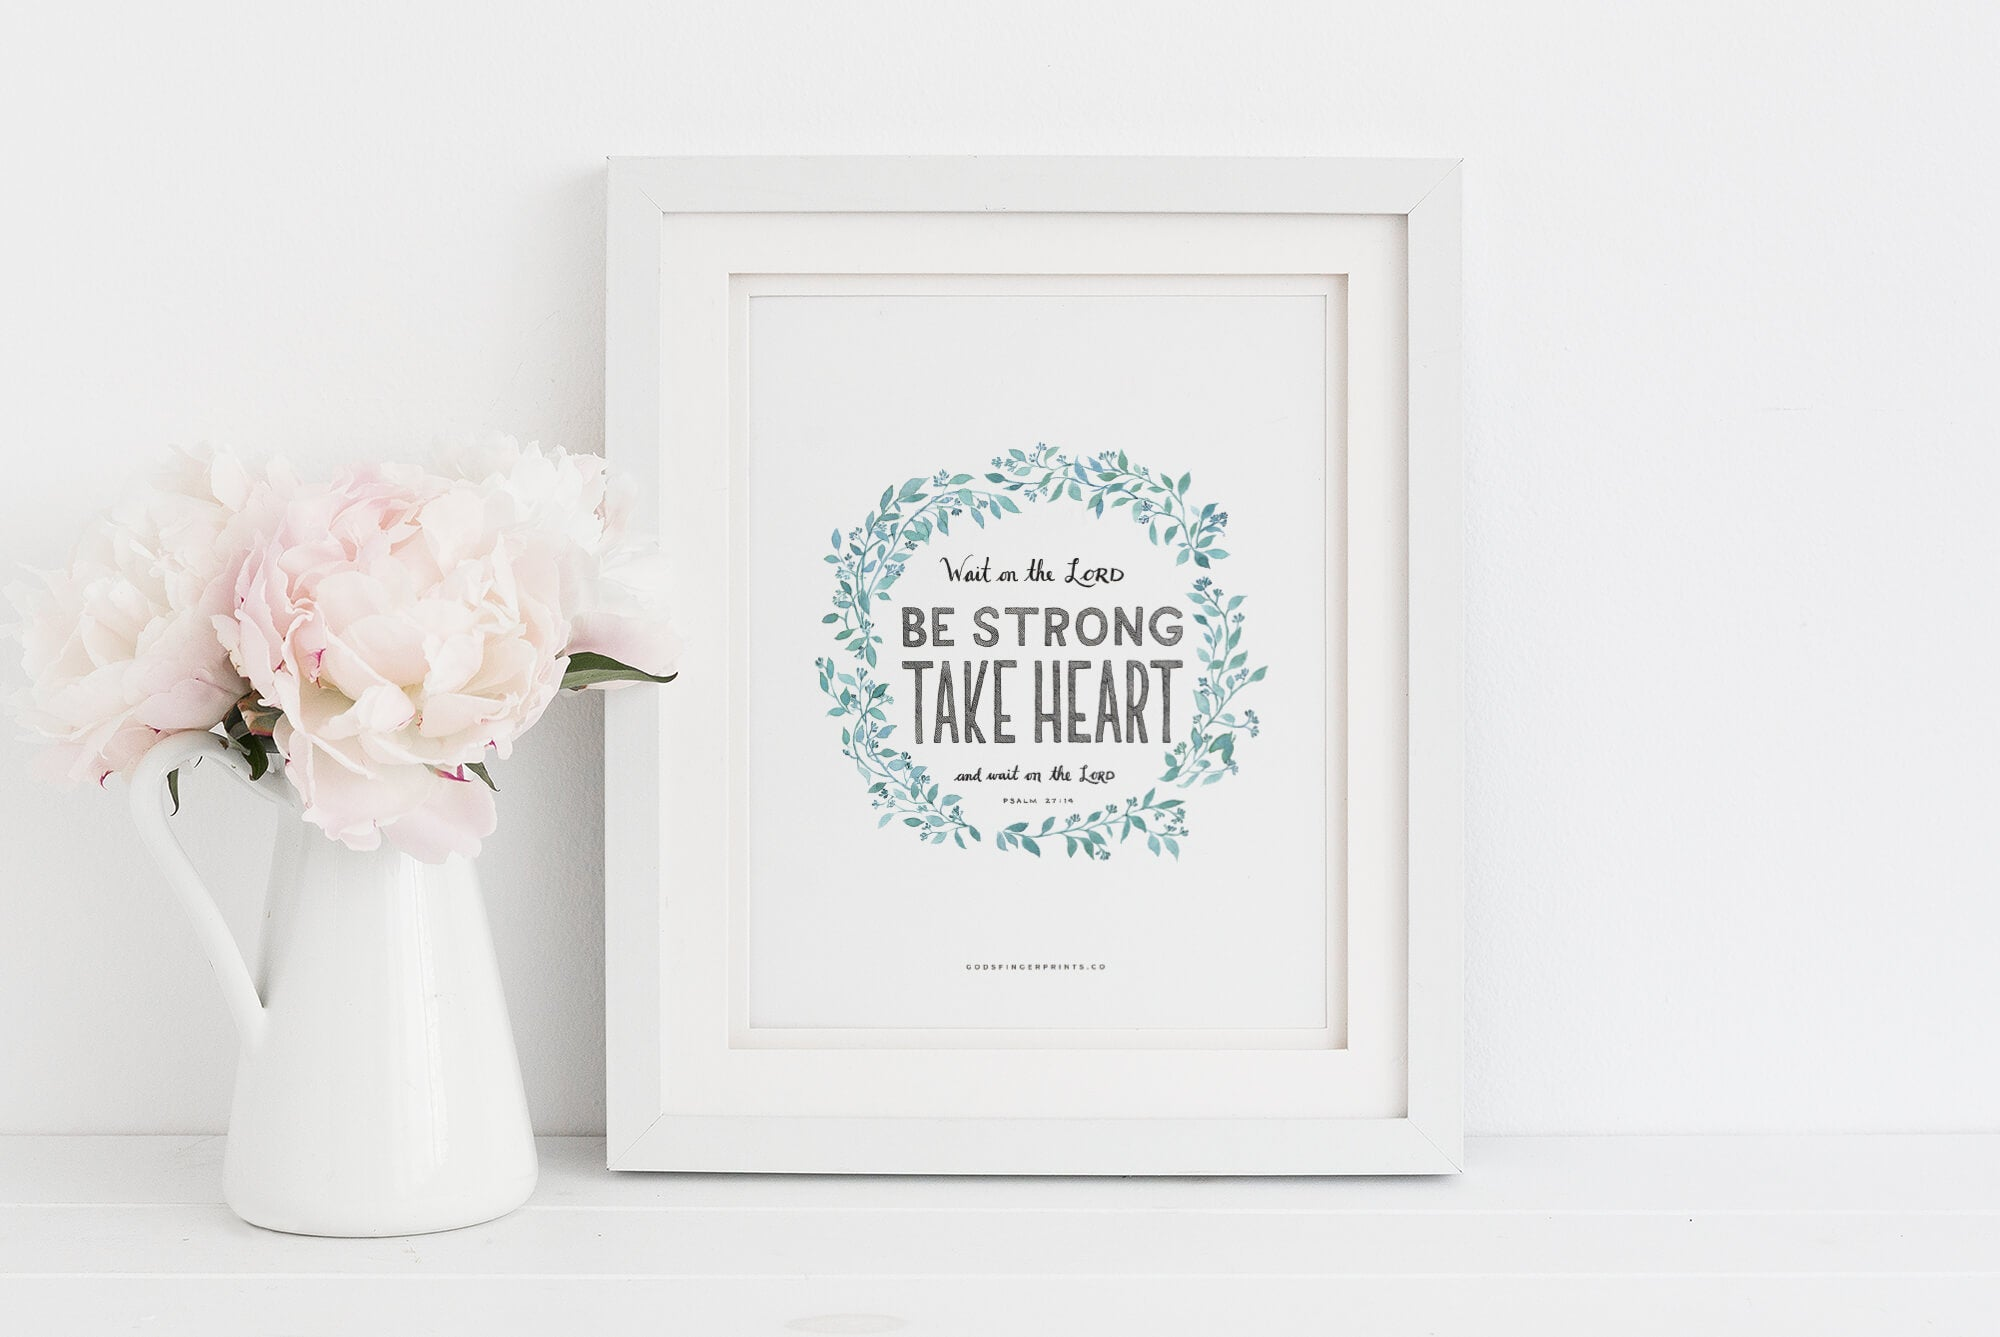 Wait on the LORD Christian Wall Art Framed